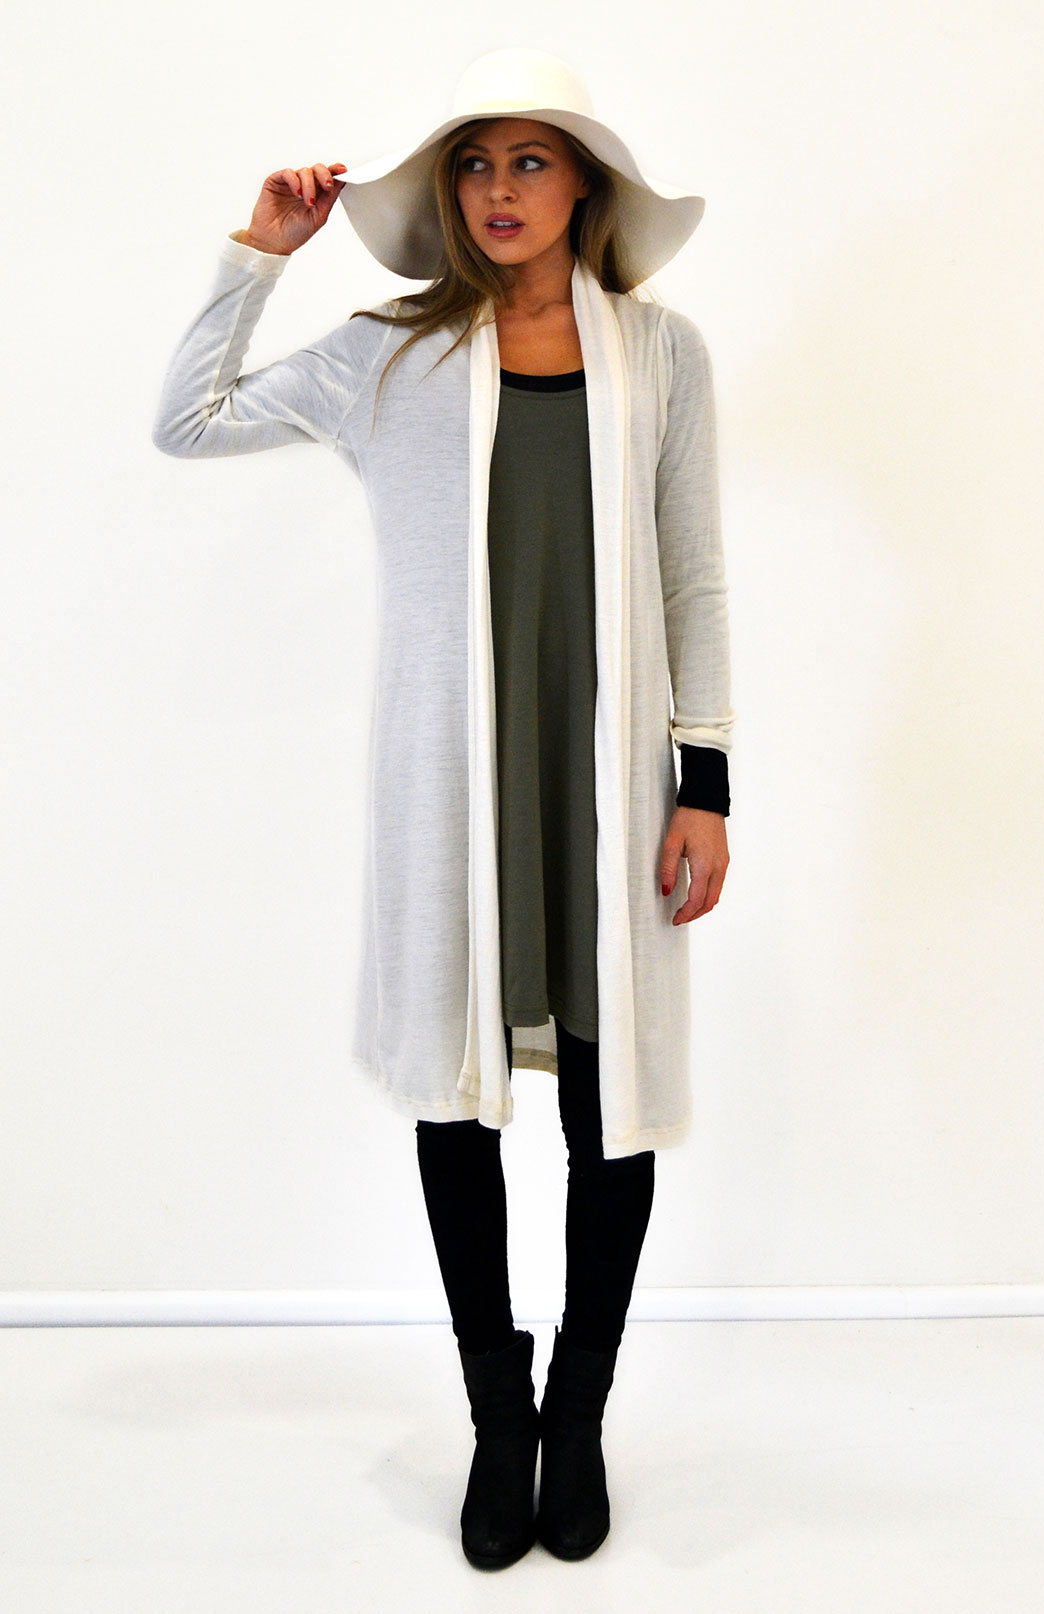 Long Drape Cardigan - Lightweight - Women's Knee Length Ivory Merino Wool Waterfall Cardigan - Smitten Merino Tasmania Australia